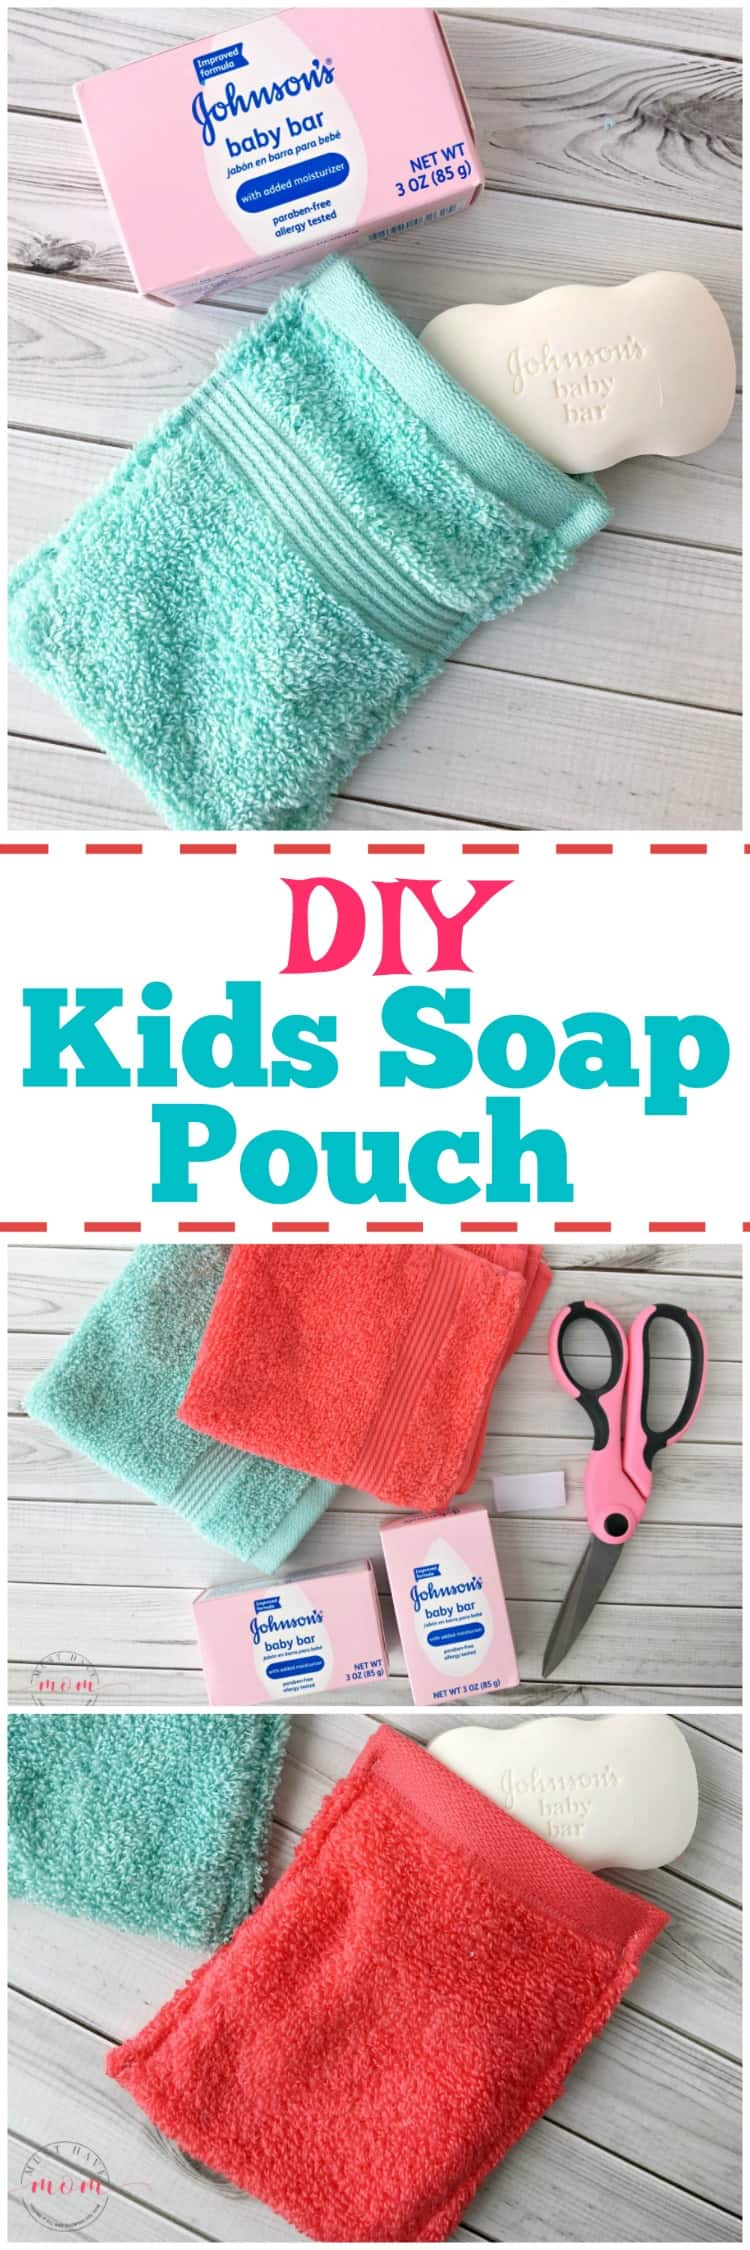 Diy Kids Soap Pouch Must Have Mom